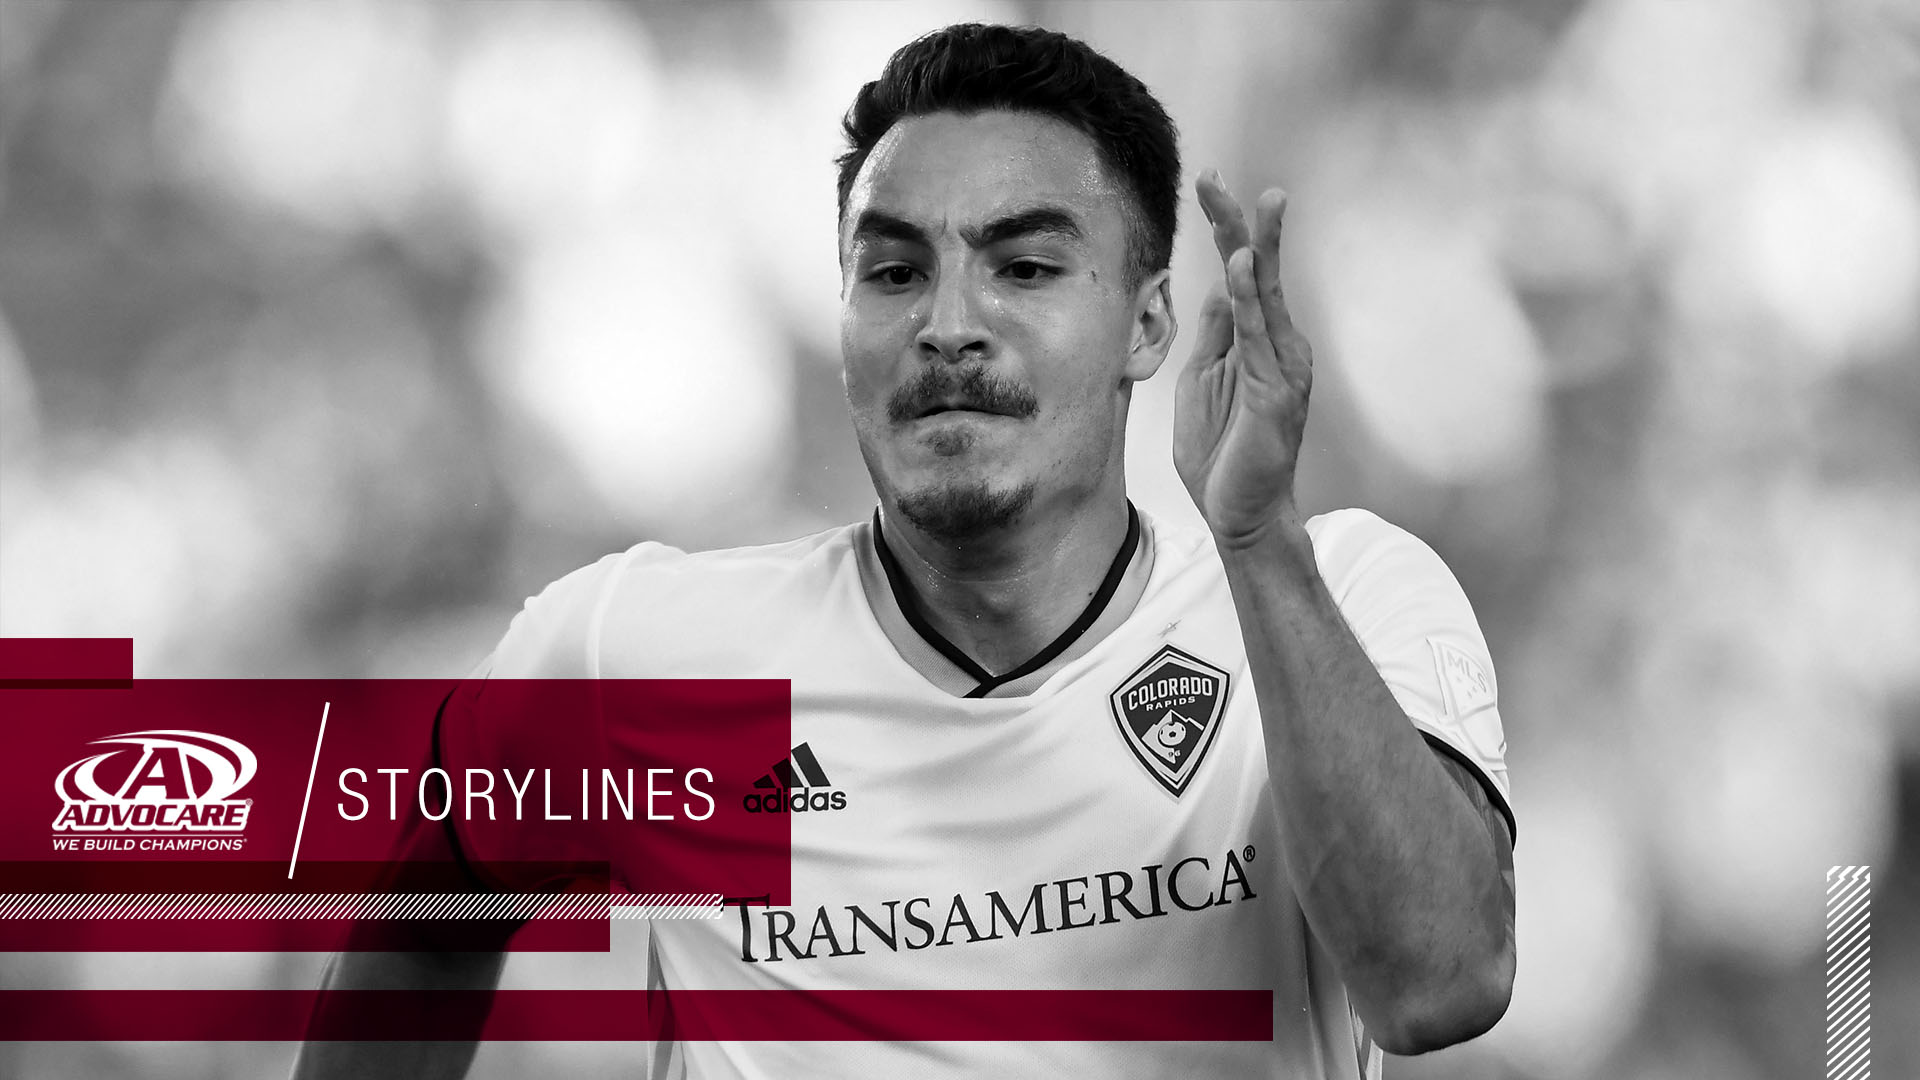 Colorado Rapids vs Minnesota United FC AdvoCare Storylines 1920x1080